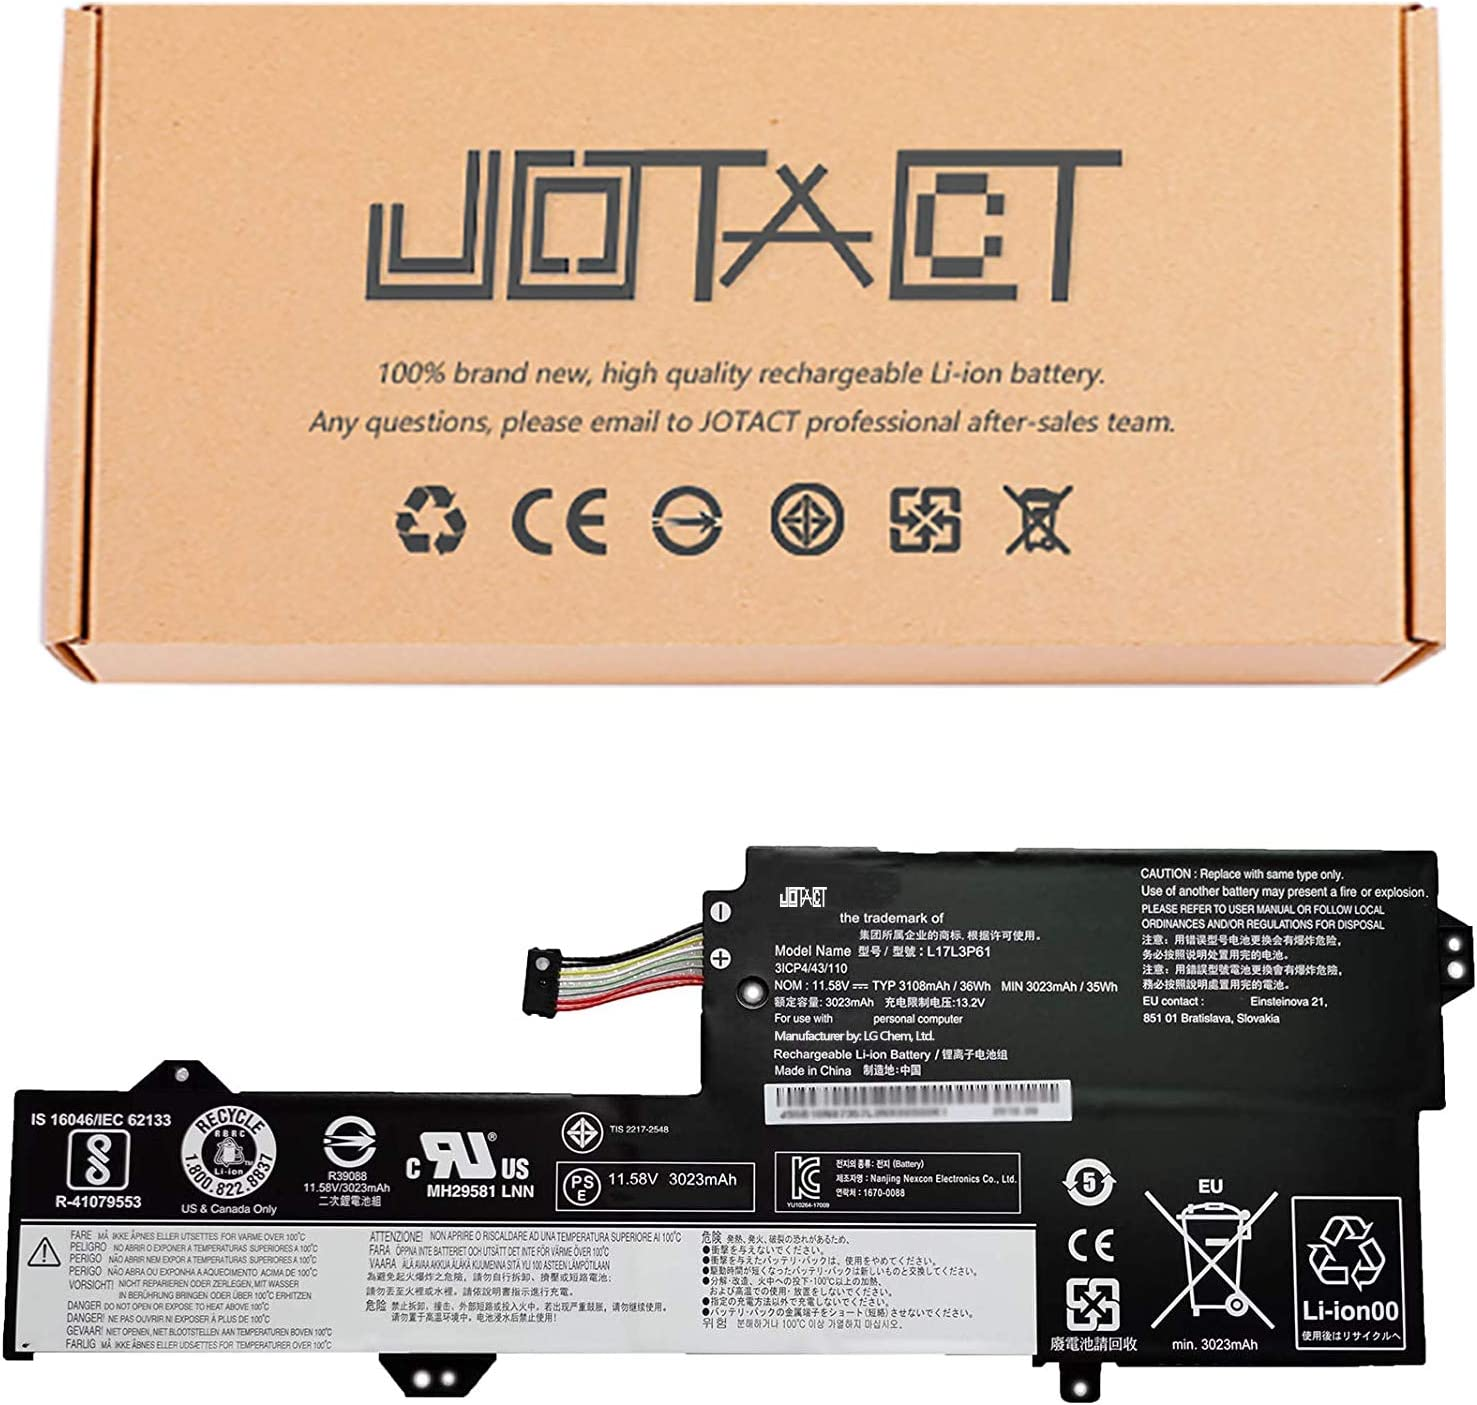 JOTACT L17L3P61(11.58V 36Wh/3108mAh 4-Cell)Laptop Battery Compatible with Lenovo Ideapad Yoga 720-12IKB 330-11IGM 320S-13IKB Xiaoxin7000-13 320-11 Series Notebook 5B10N87357 L17C3P61 L17M3P61 (Type A)